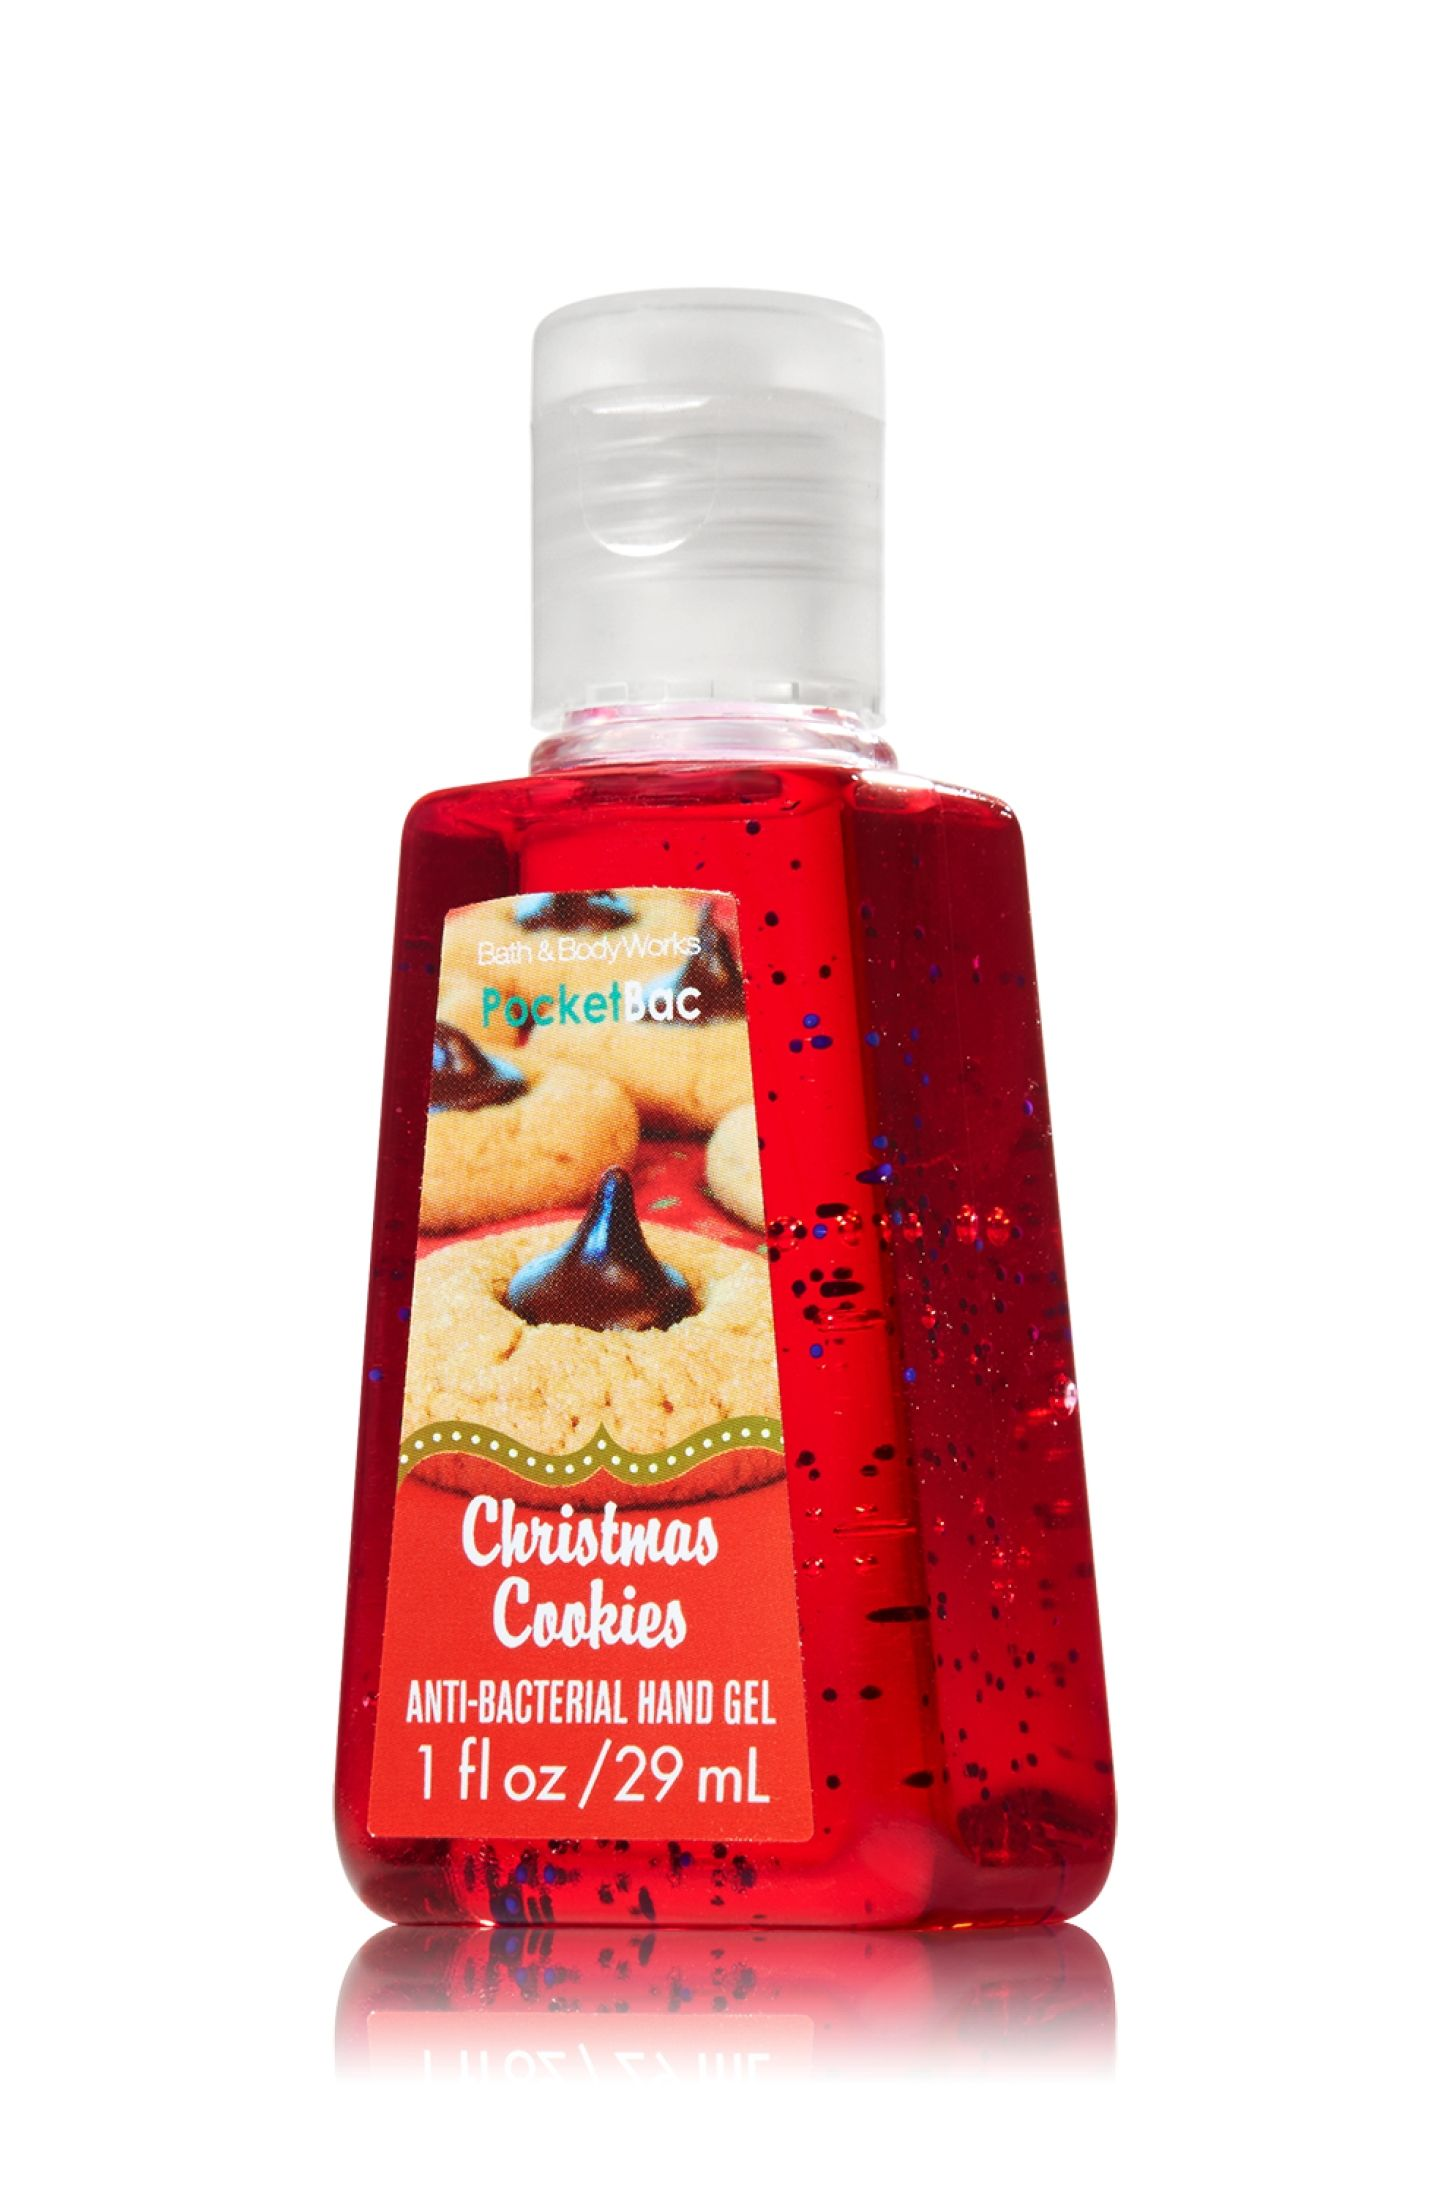 Christmas Cookies Pocketbac Sanitizing Hand Gel Anti Bacterial